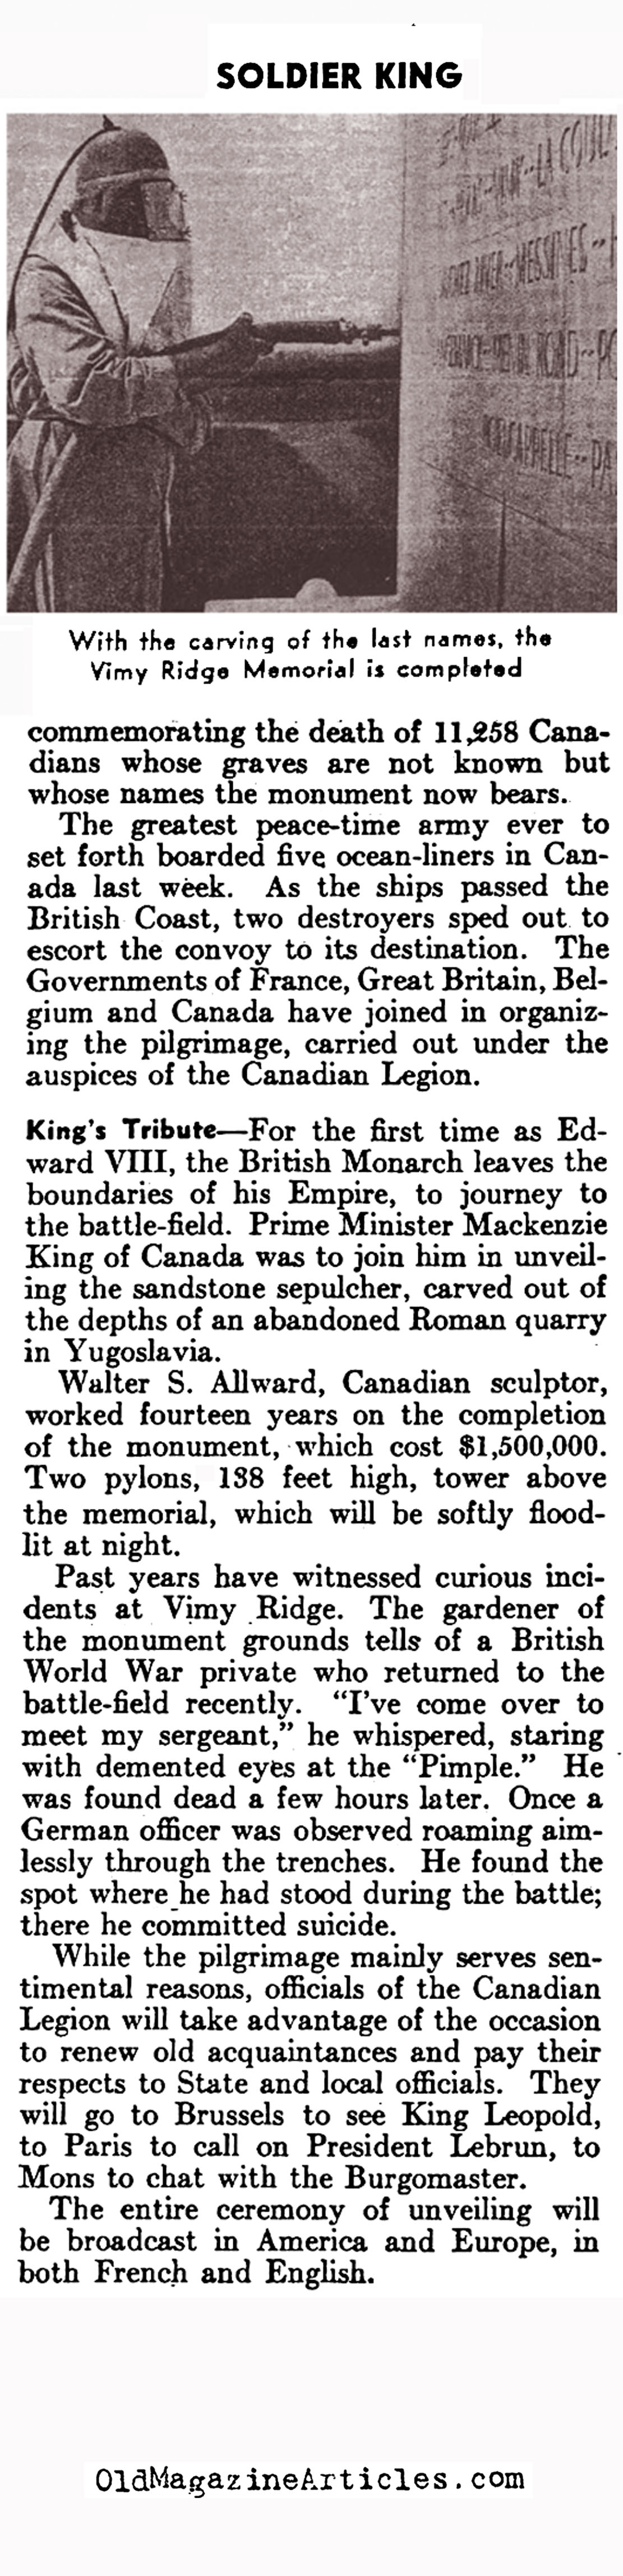 Edward VIII: the Soldier King (Literary Digest, 1936)